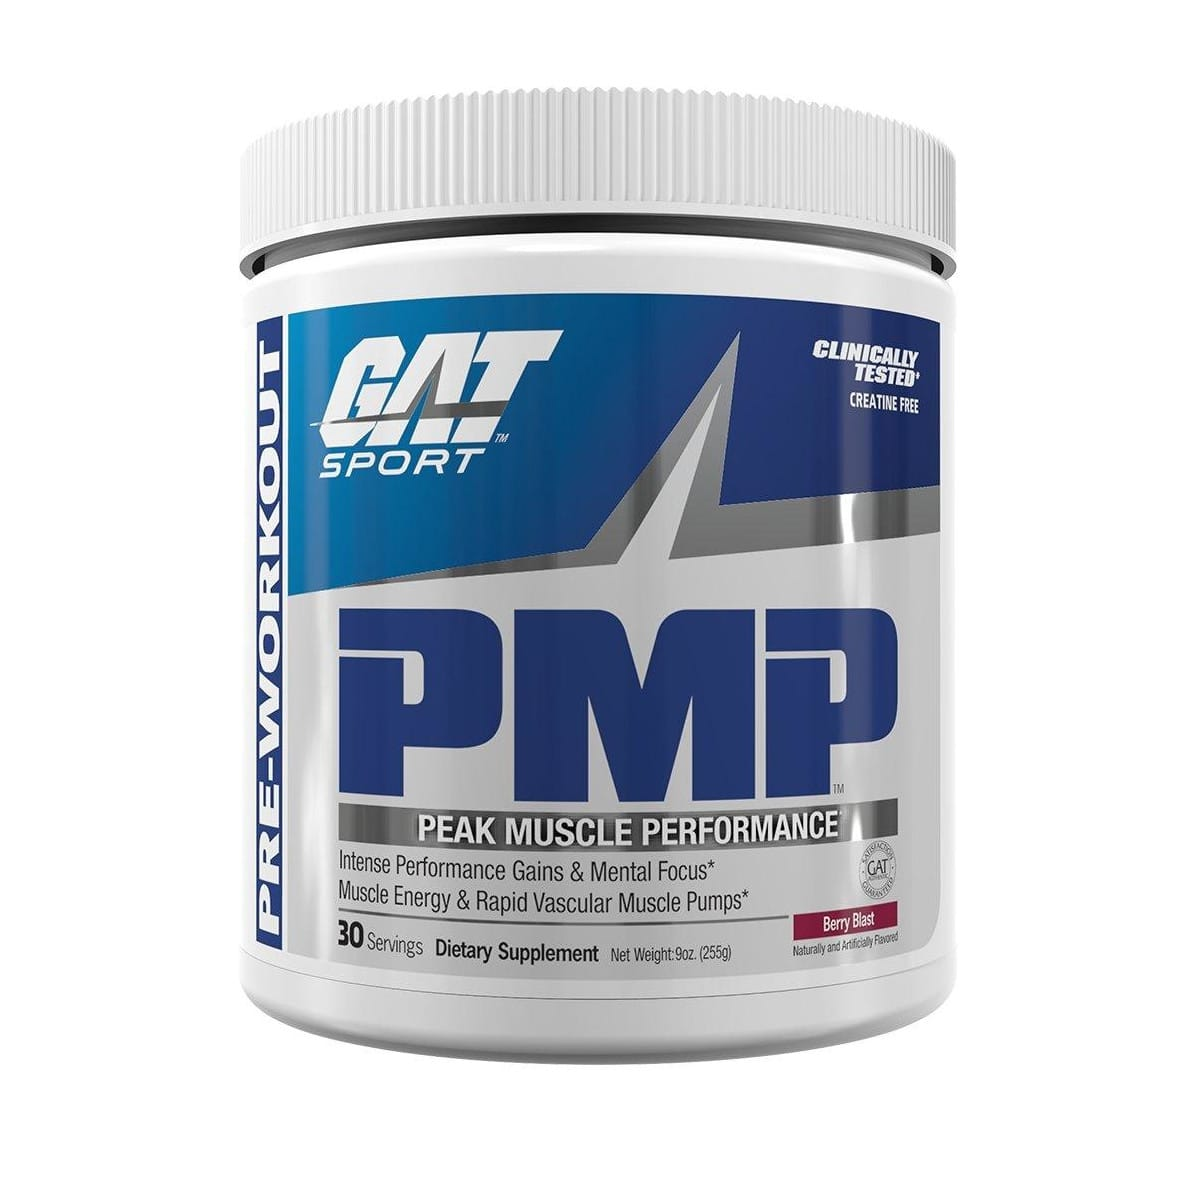 pmp-pre-workout-30-servings-659883@2x